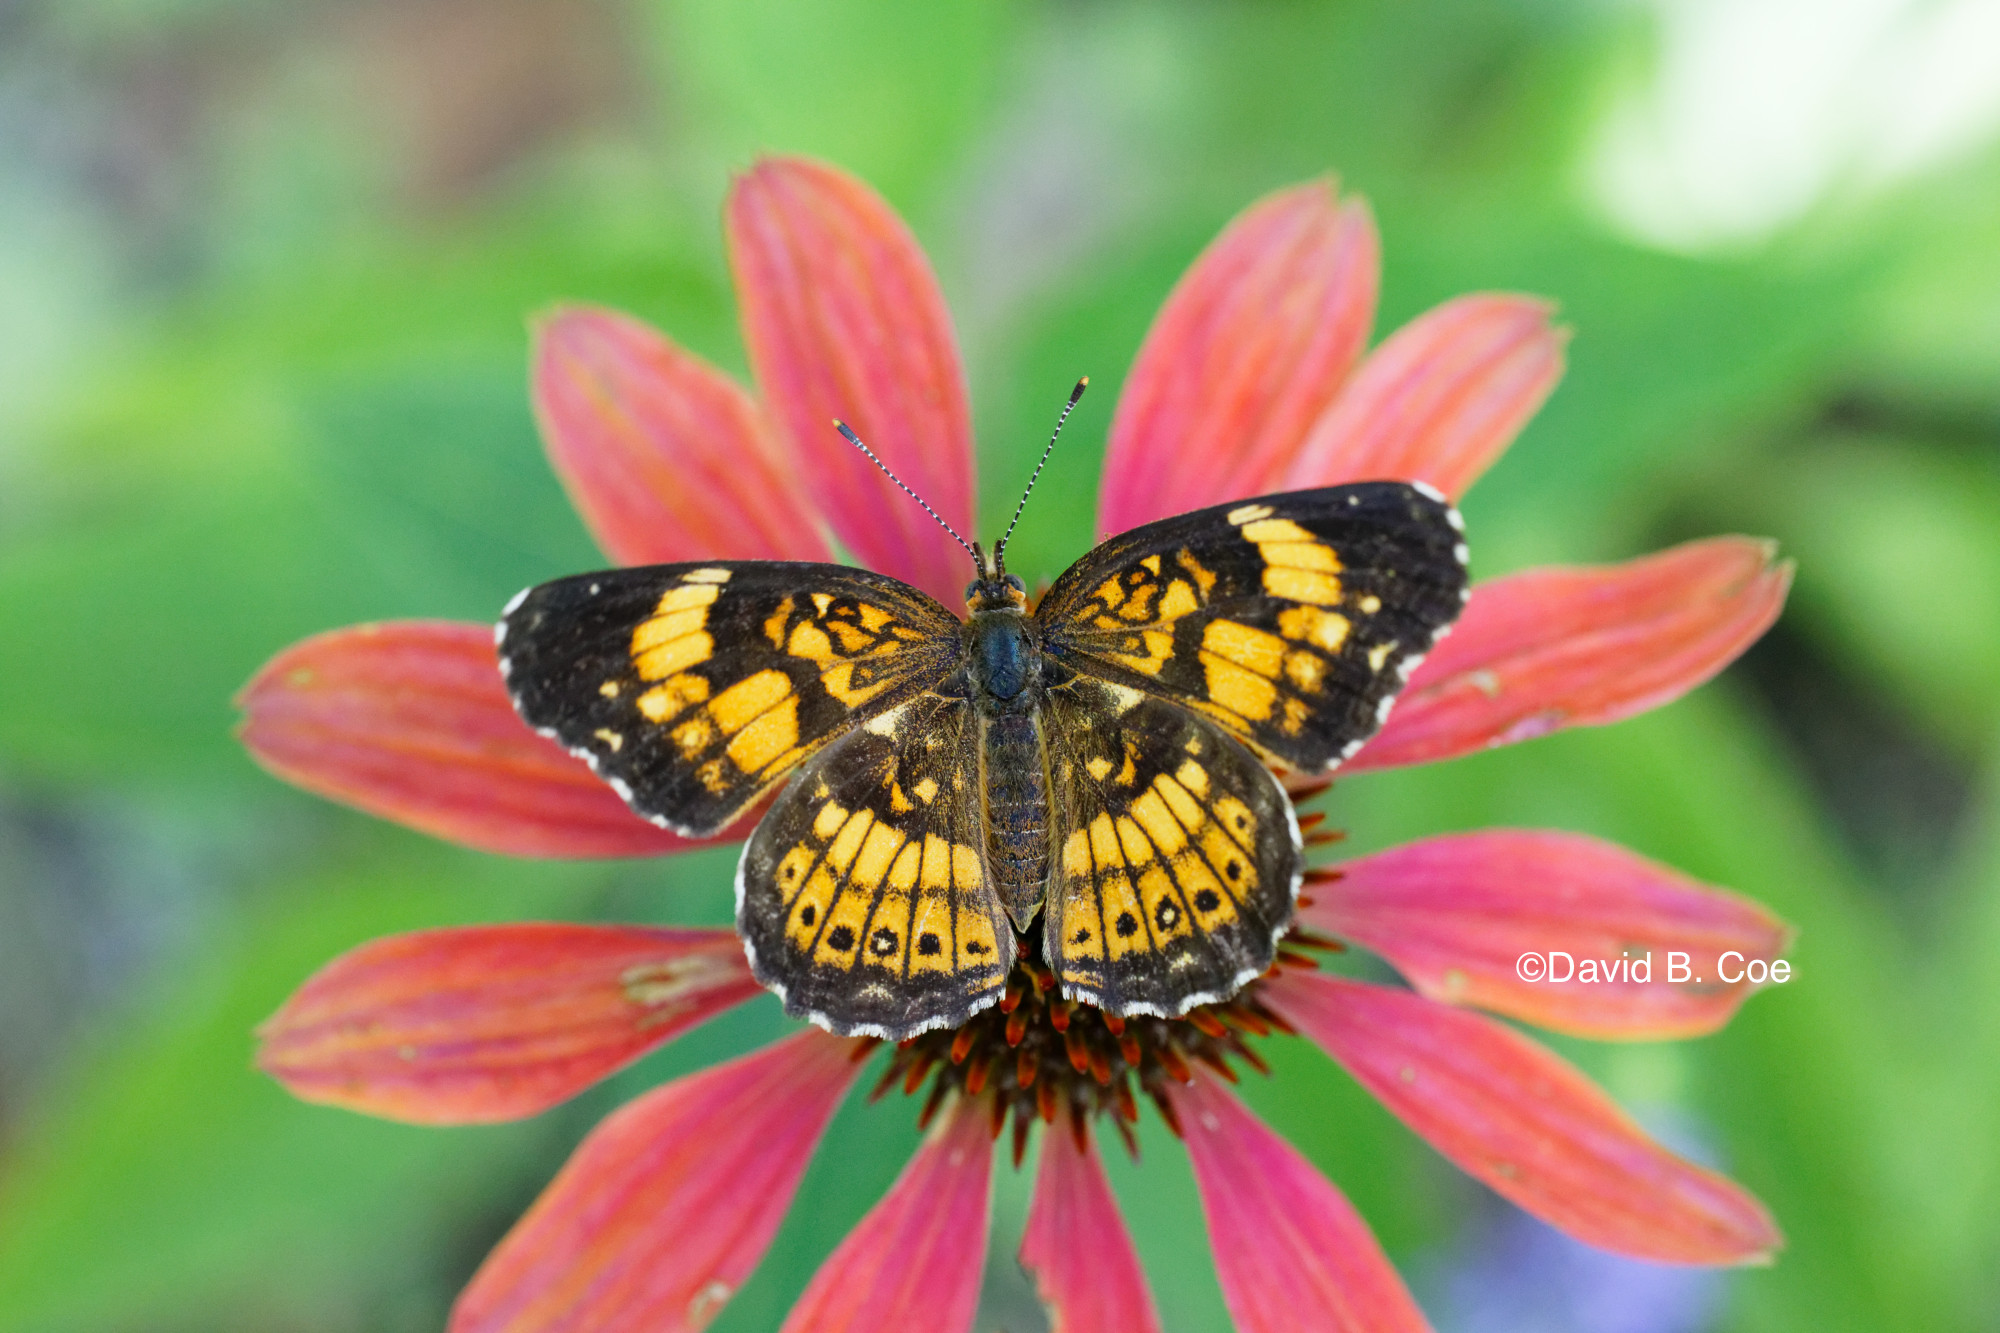 Silvery Checkerspot I, by David B. Coe